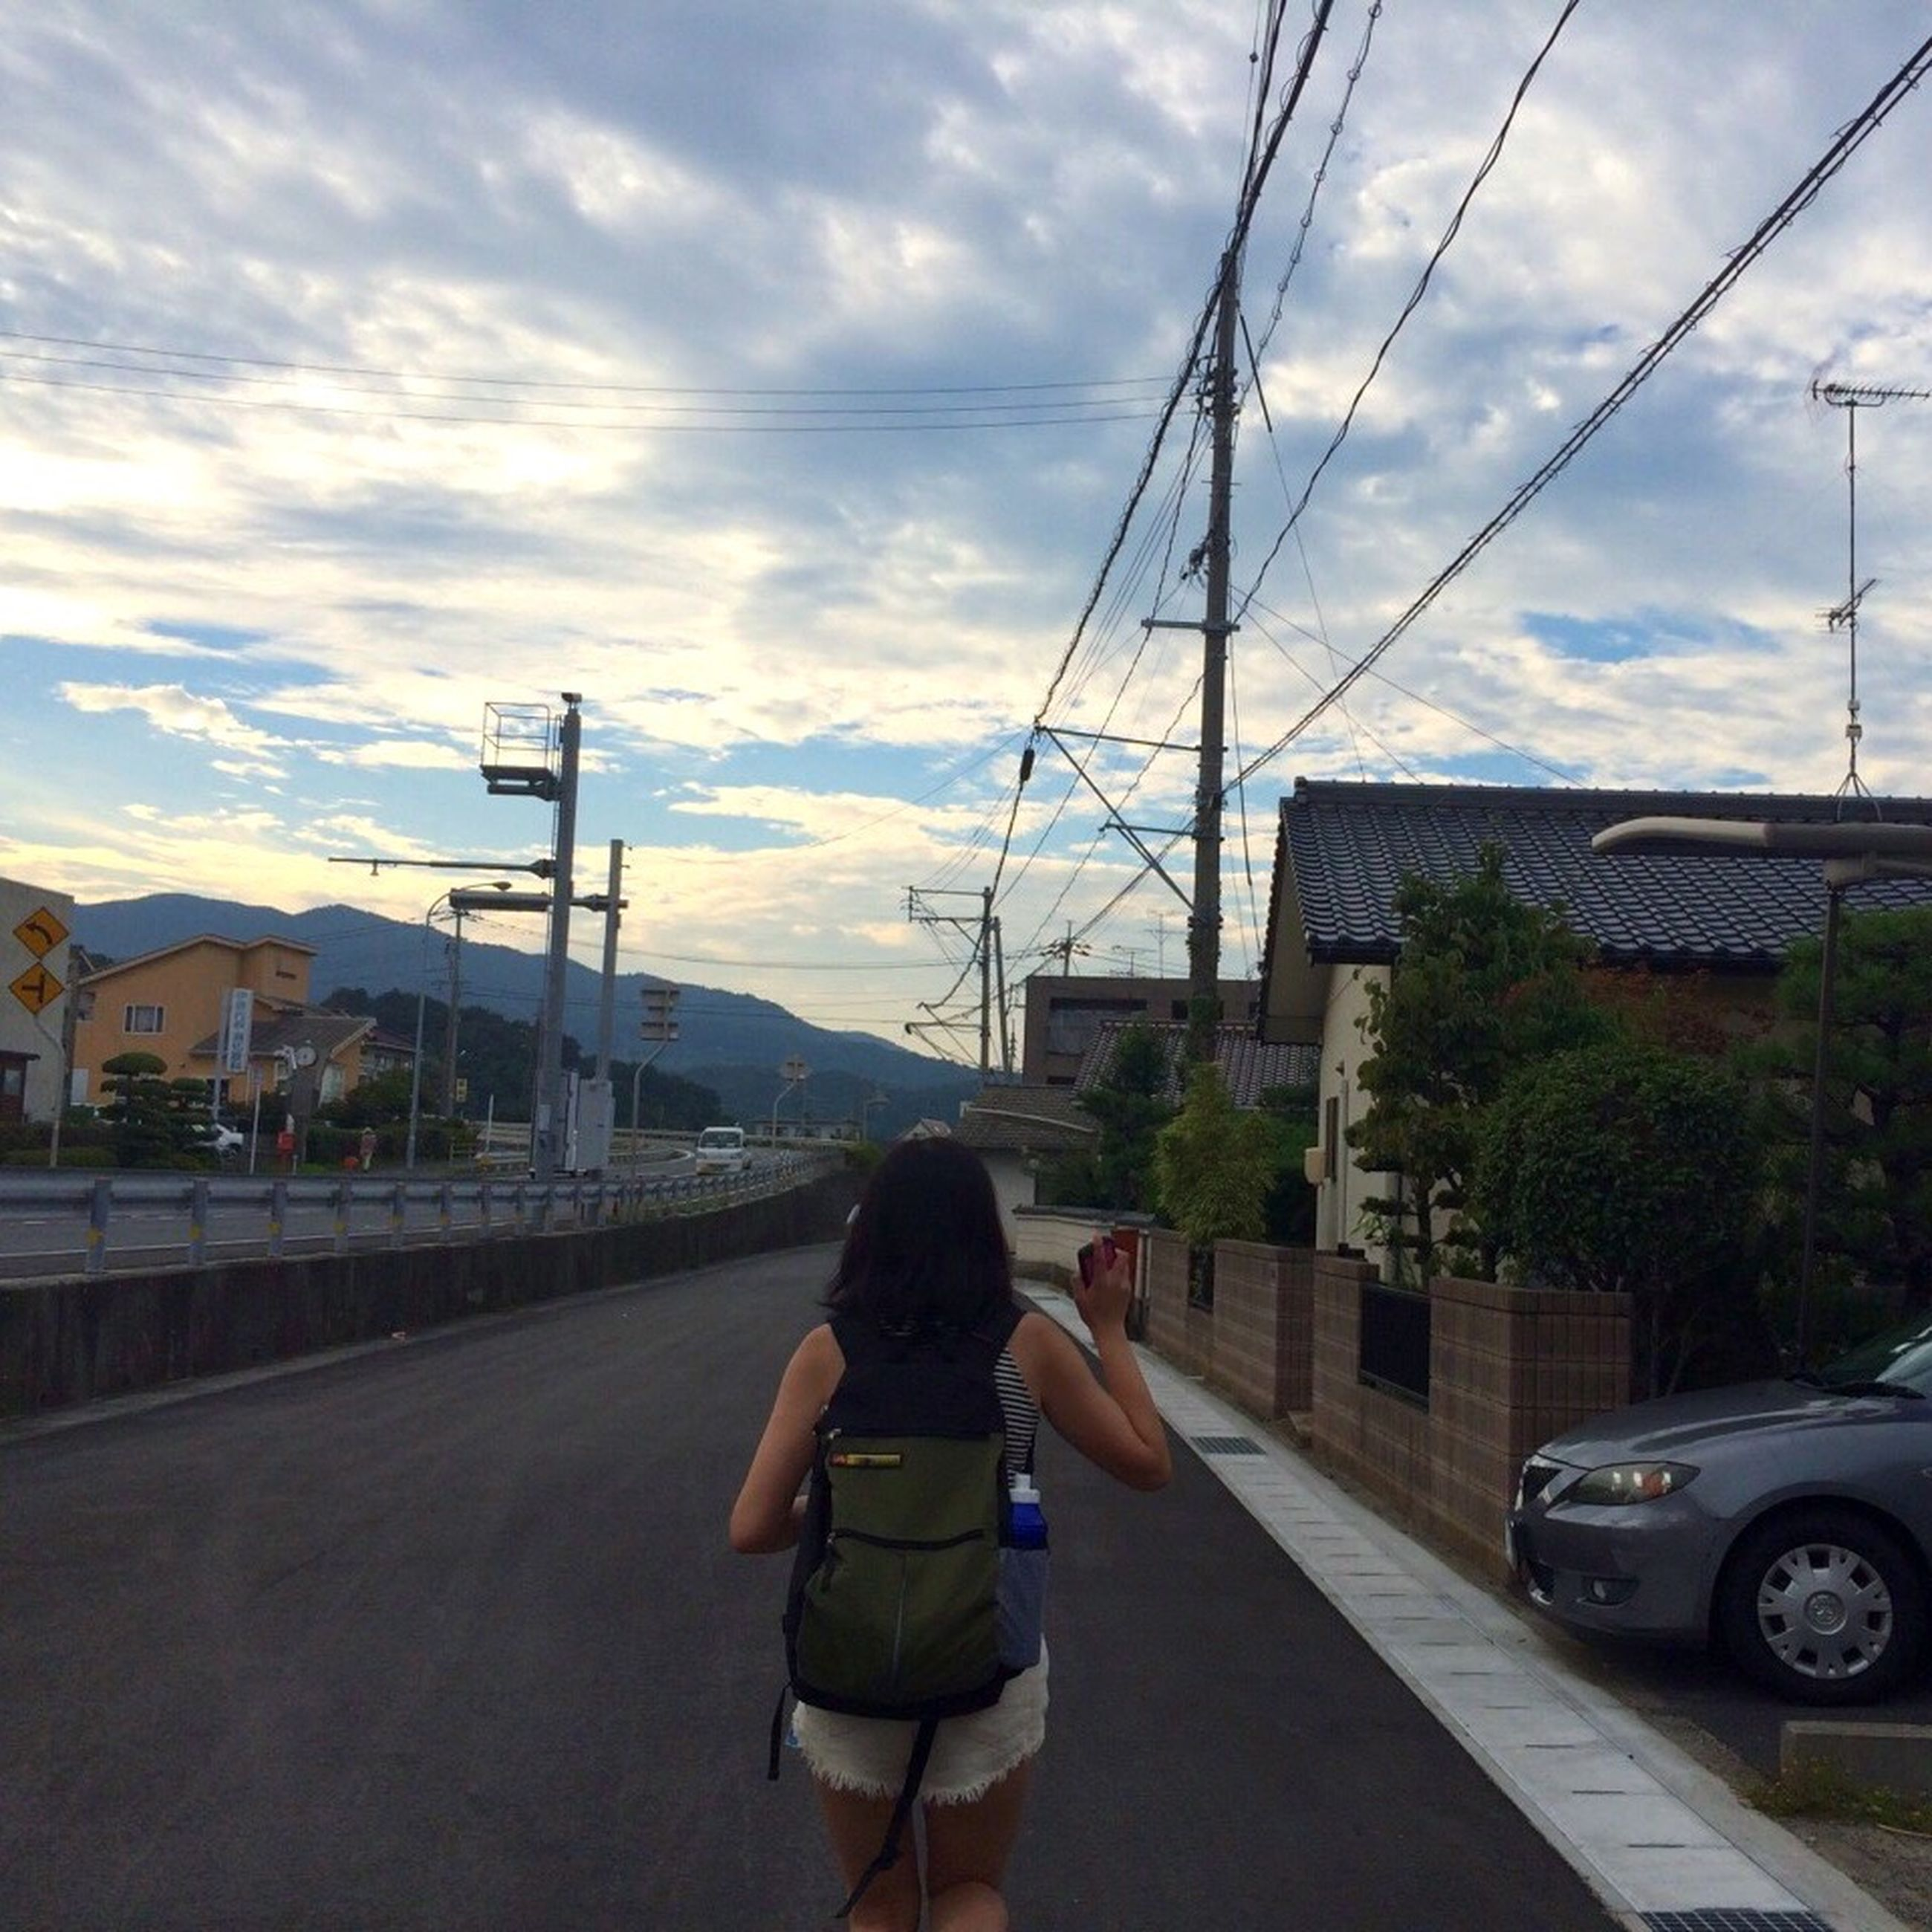 transportation, rear view, road, full length, street, sky, walking, mode of transport, on the move, architecture, person, car, land vehicle, cloud, casual clothing, riding, day, the way forward, mountain, cable, cloud - sky, power line, city life, outdoors